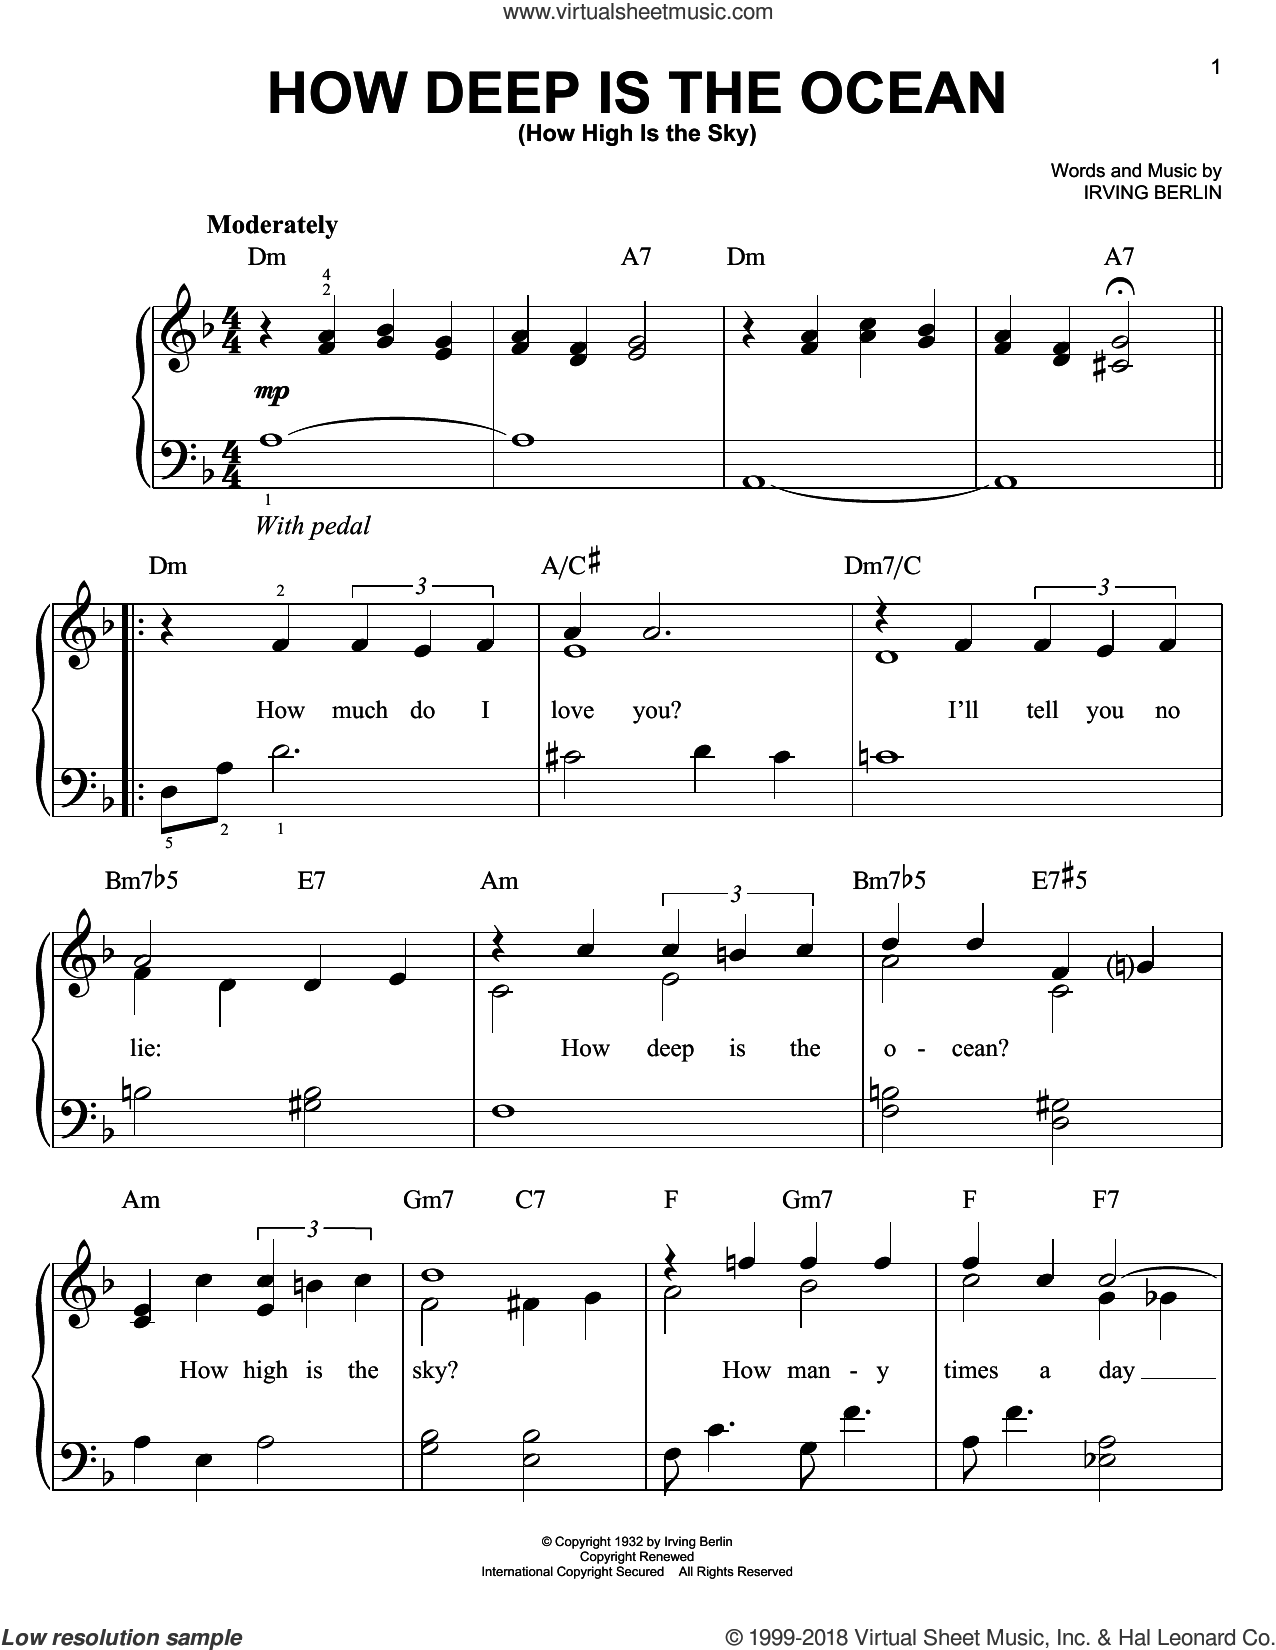 How Deep Is The Ocean (How High Is The Sky) sheet music for piano solo by Irving Berlin, wedding score, easy skill level